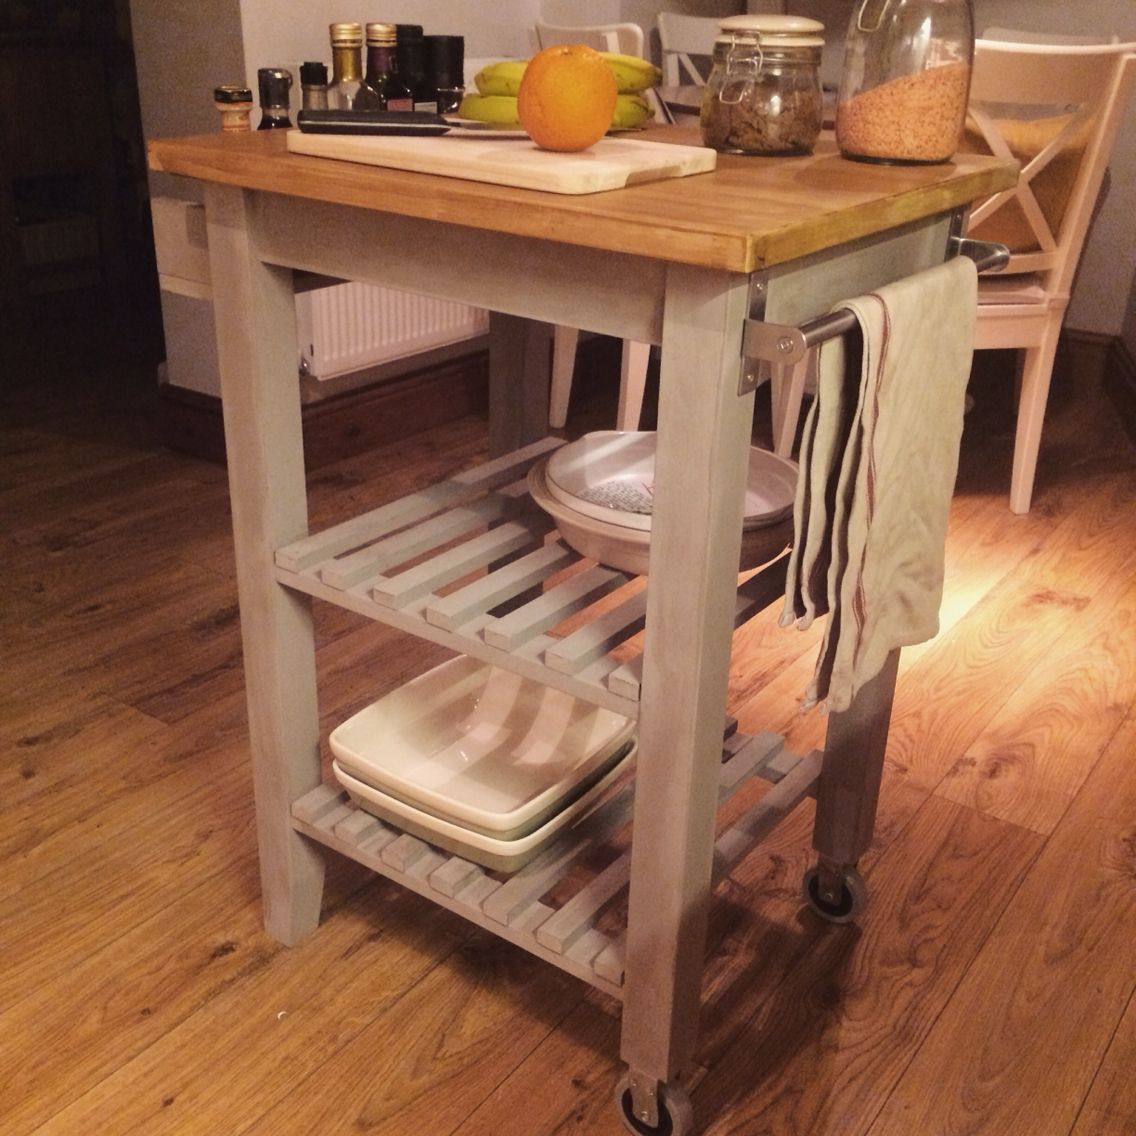 Bekvam Kitchen Cart Hack Something Like This Could Work